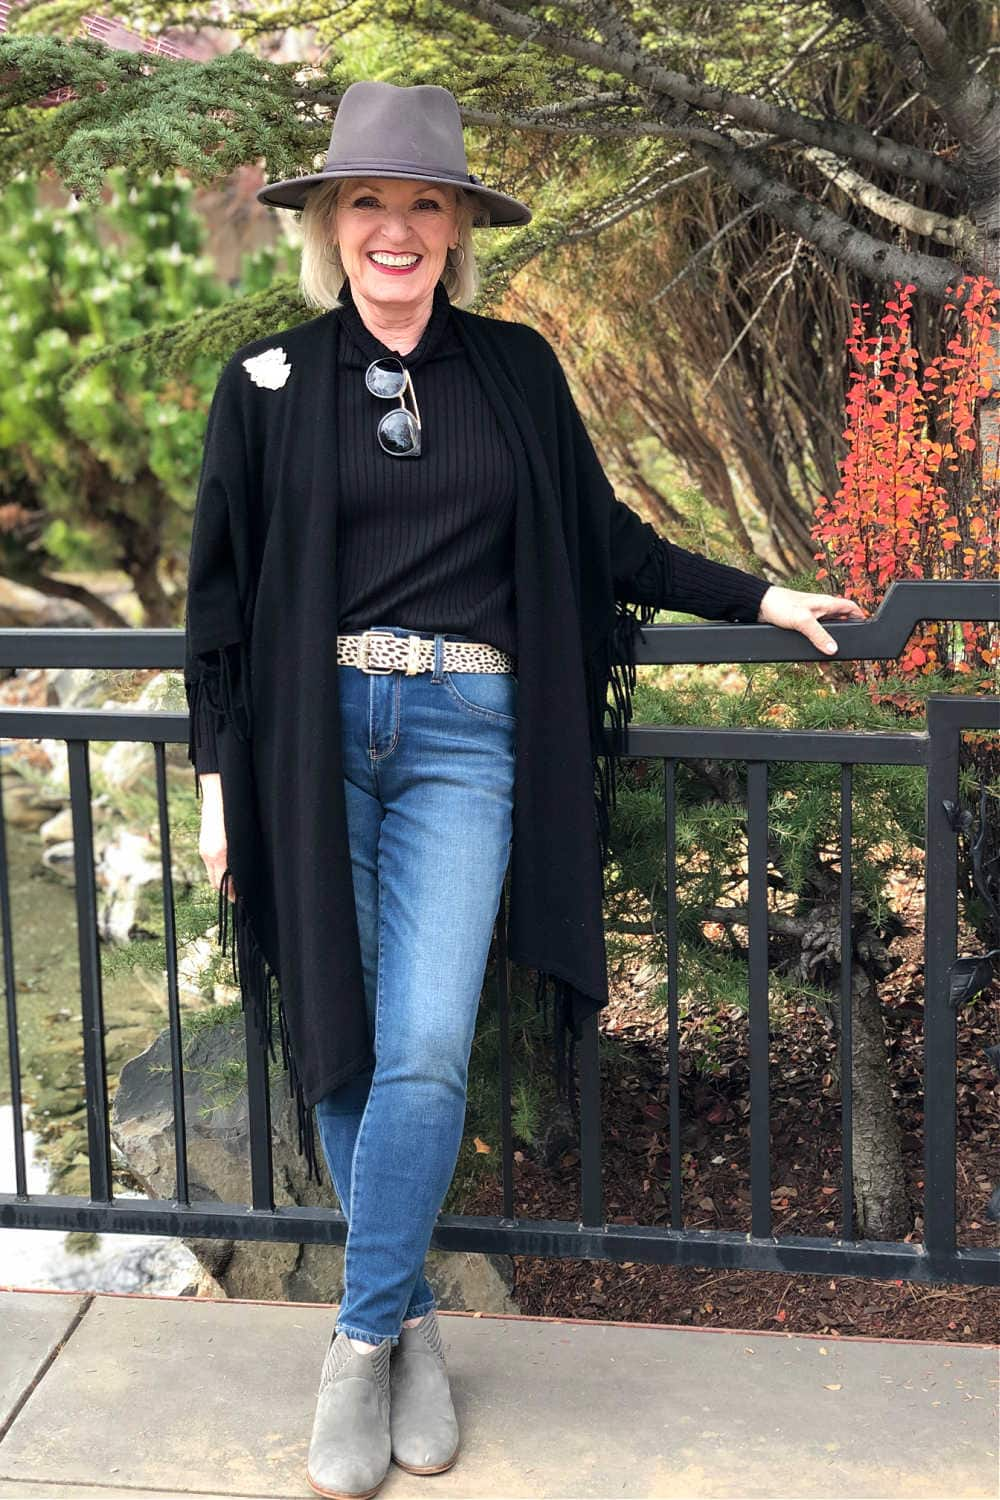 over 50 fashion blogger jennifer of a well styled life wearing grey fedora and black ruana